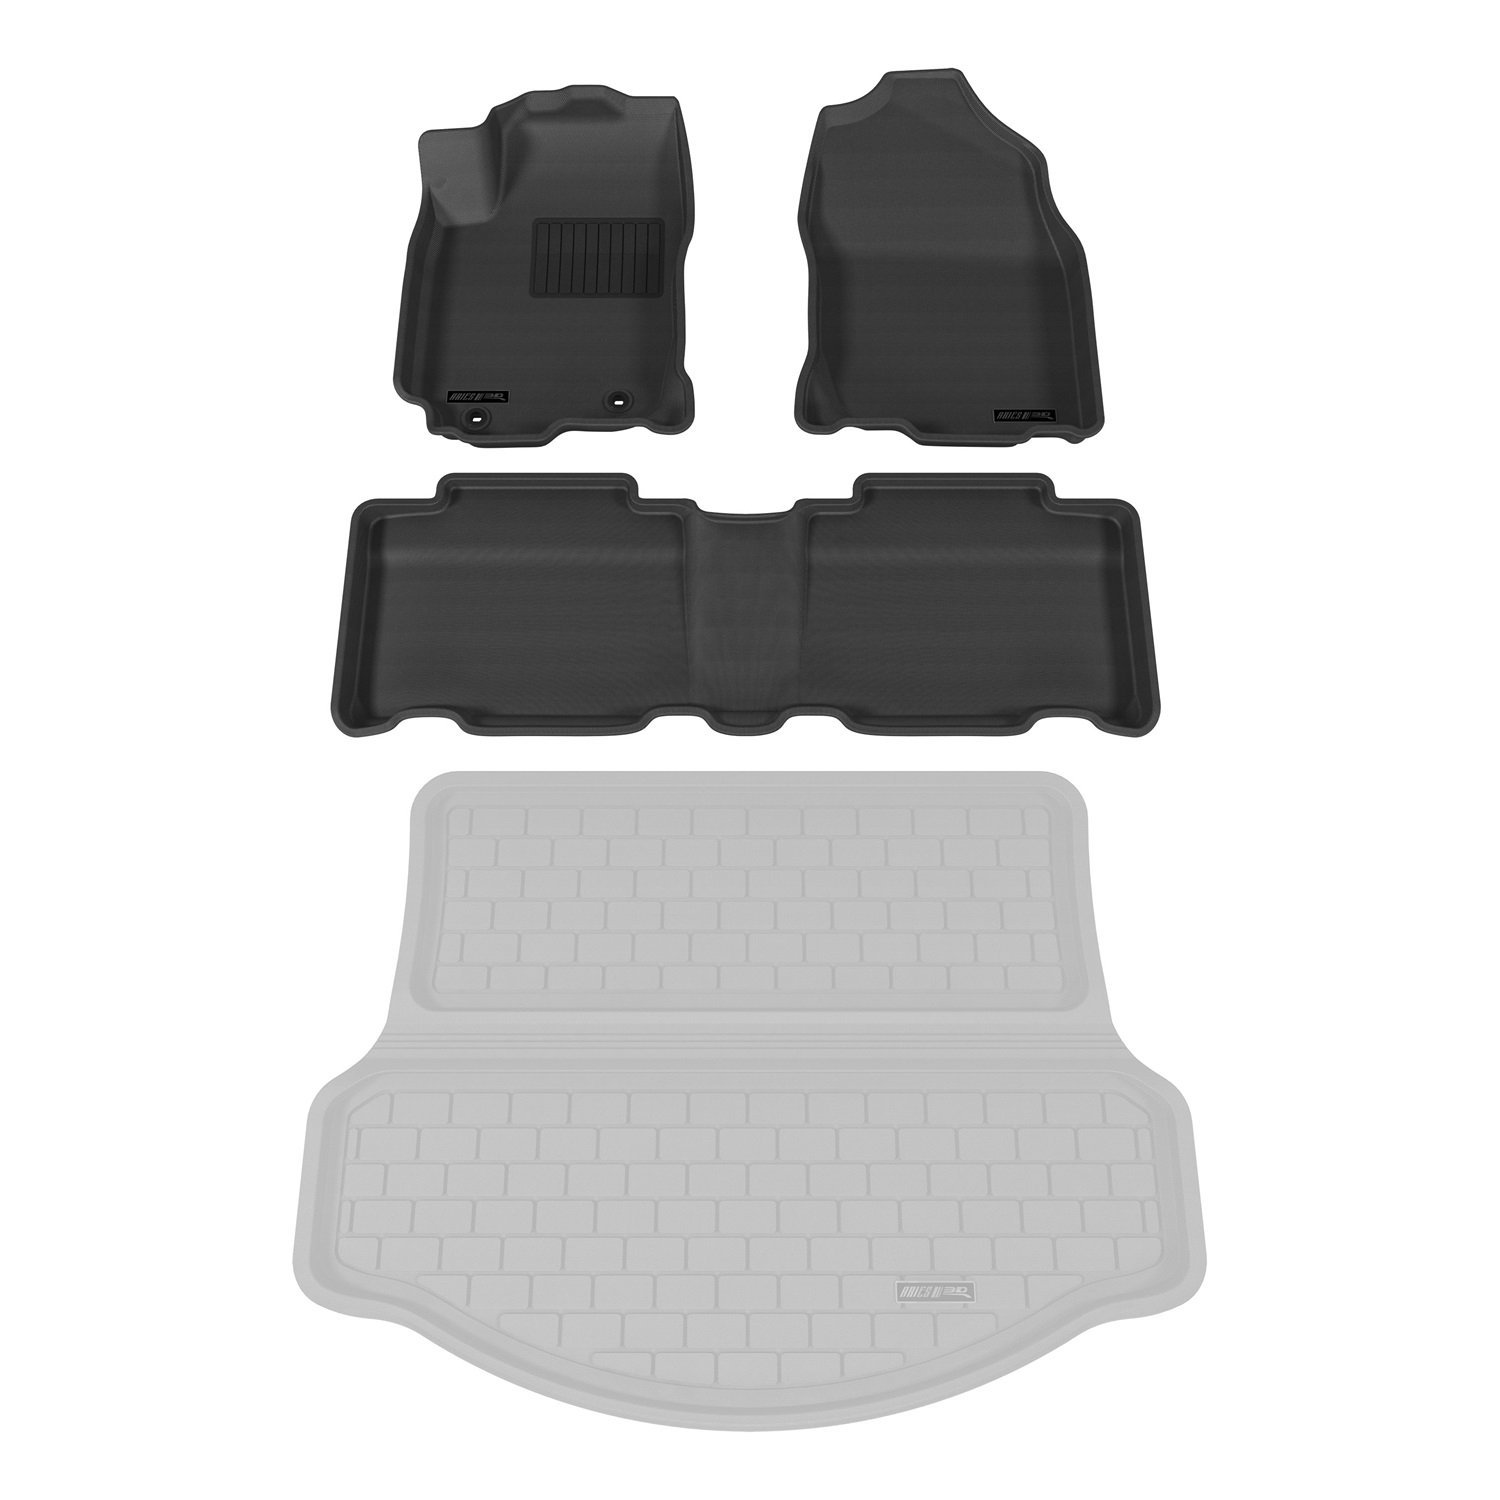 fit to liners your floormat by over and perfectly the mats into measured too these spring trays carpet floor favorites are reach a make protect model of car up laser